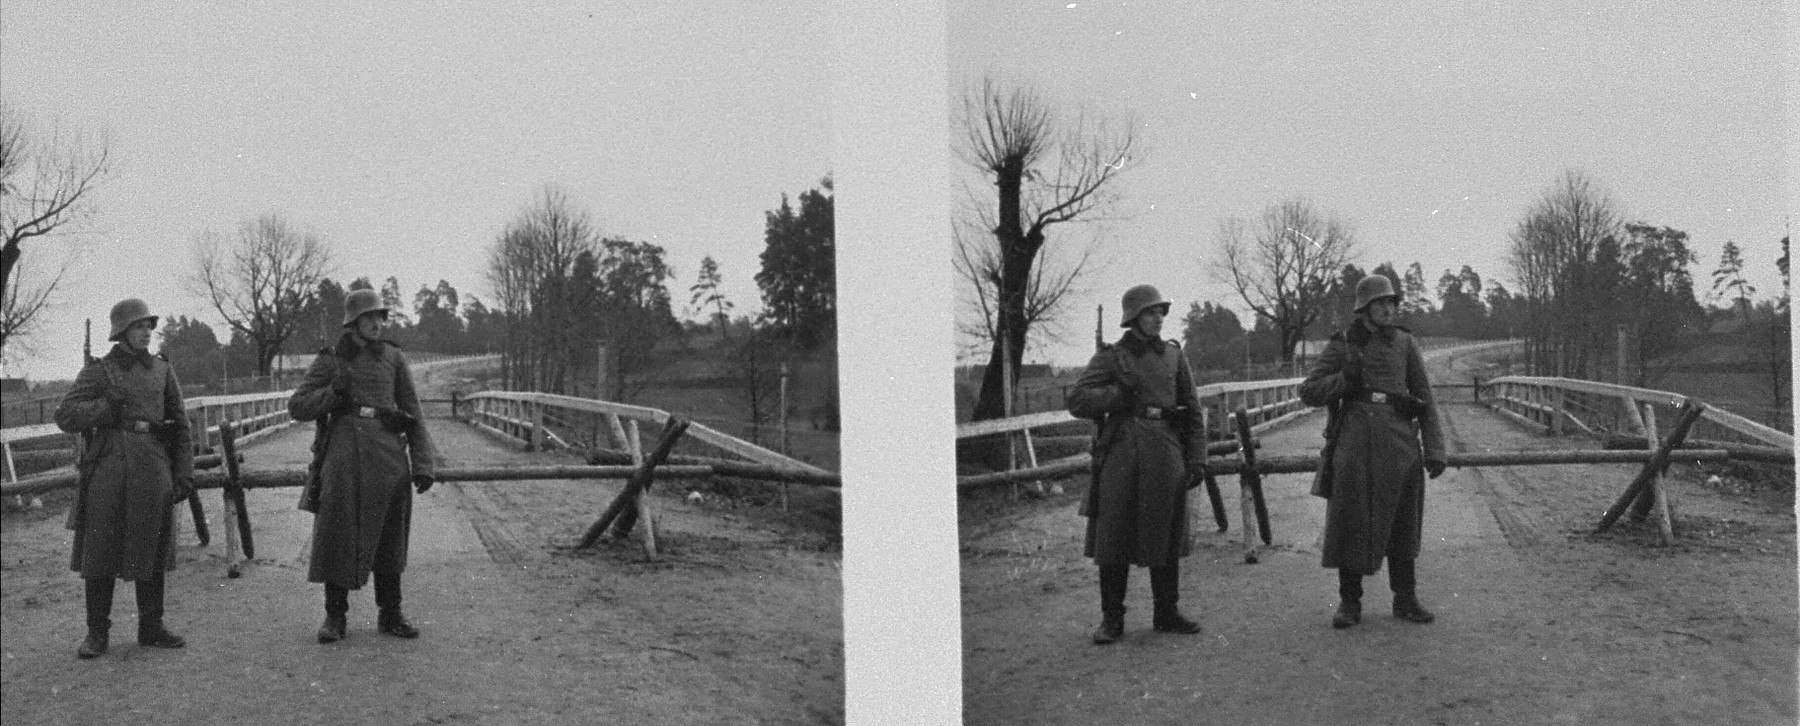 Stereoscopic photograph of two German sentries standing guard in front of a gate along the demarcation line between Soviet and German occupied Poland.